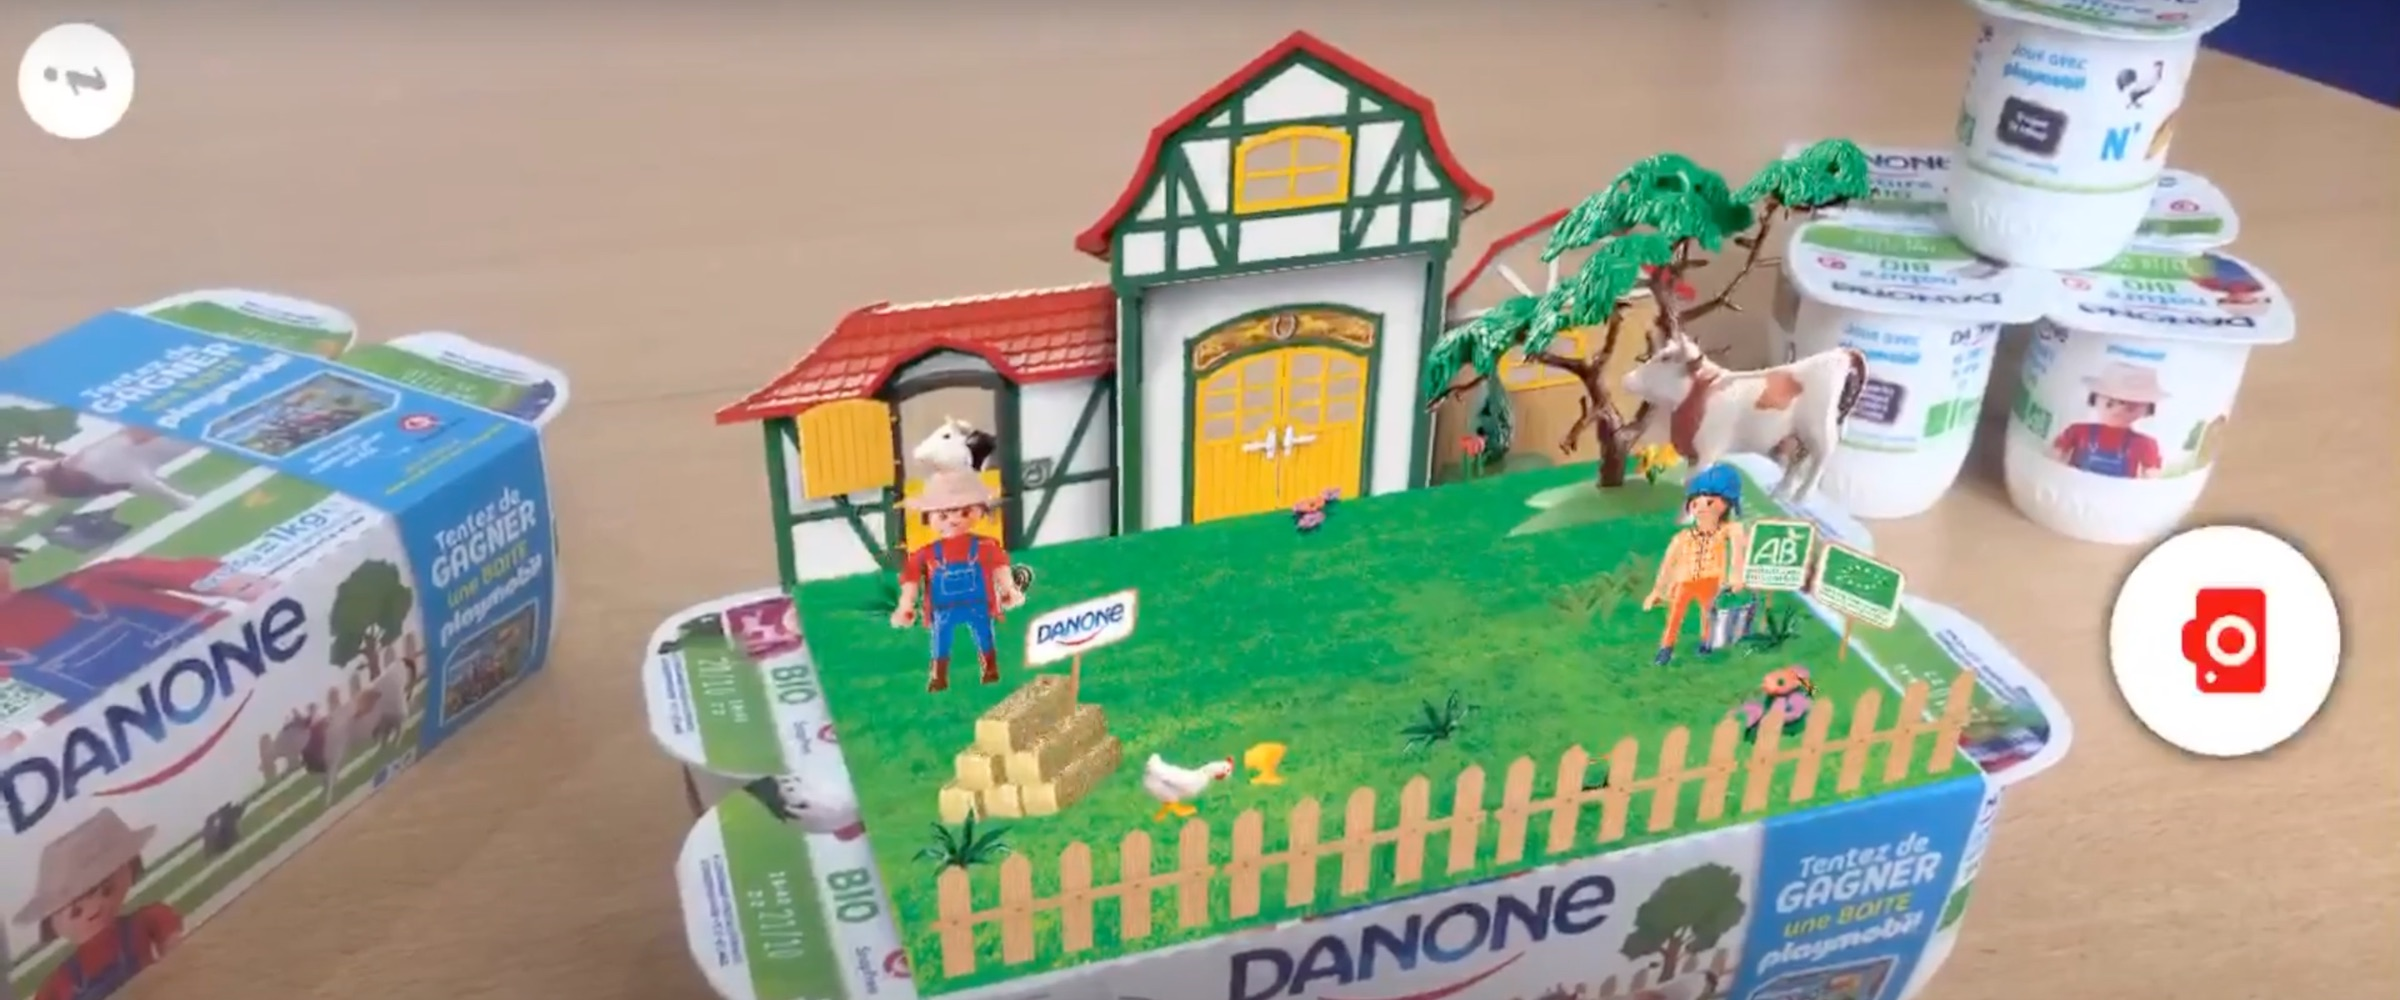 Overview of Danone's natural, organic yogurt packaging with SnapPress augmented reality technology